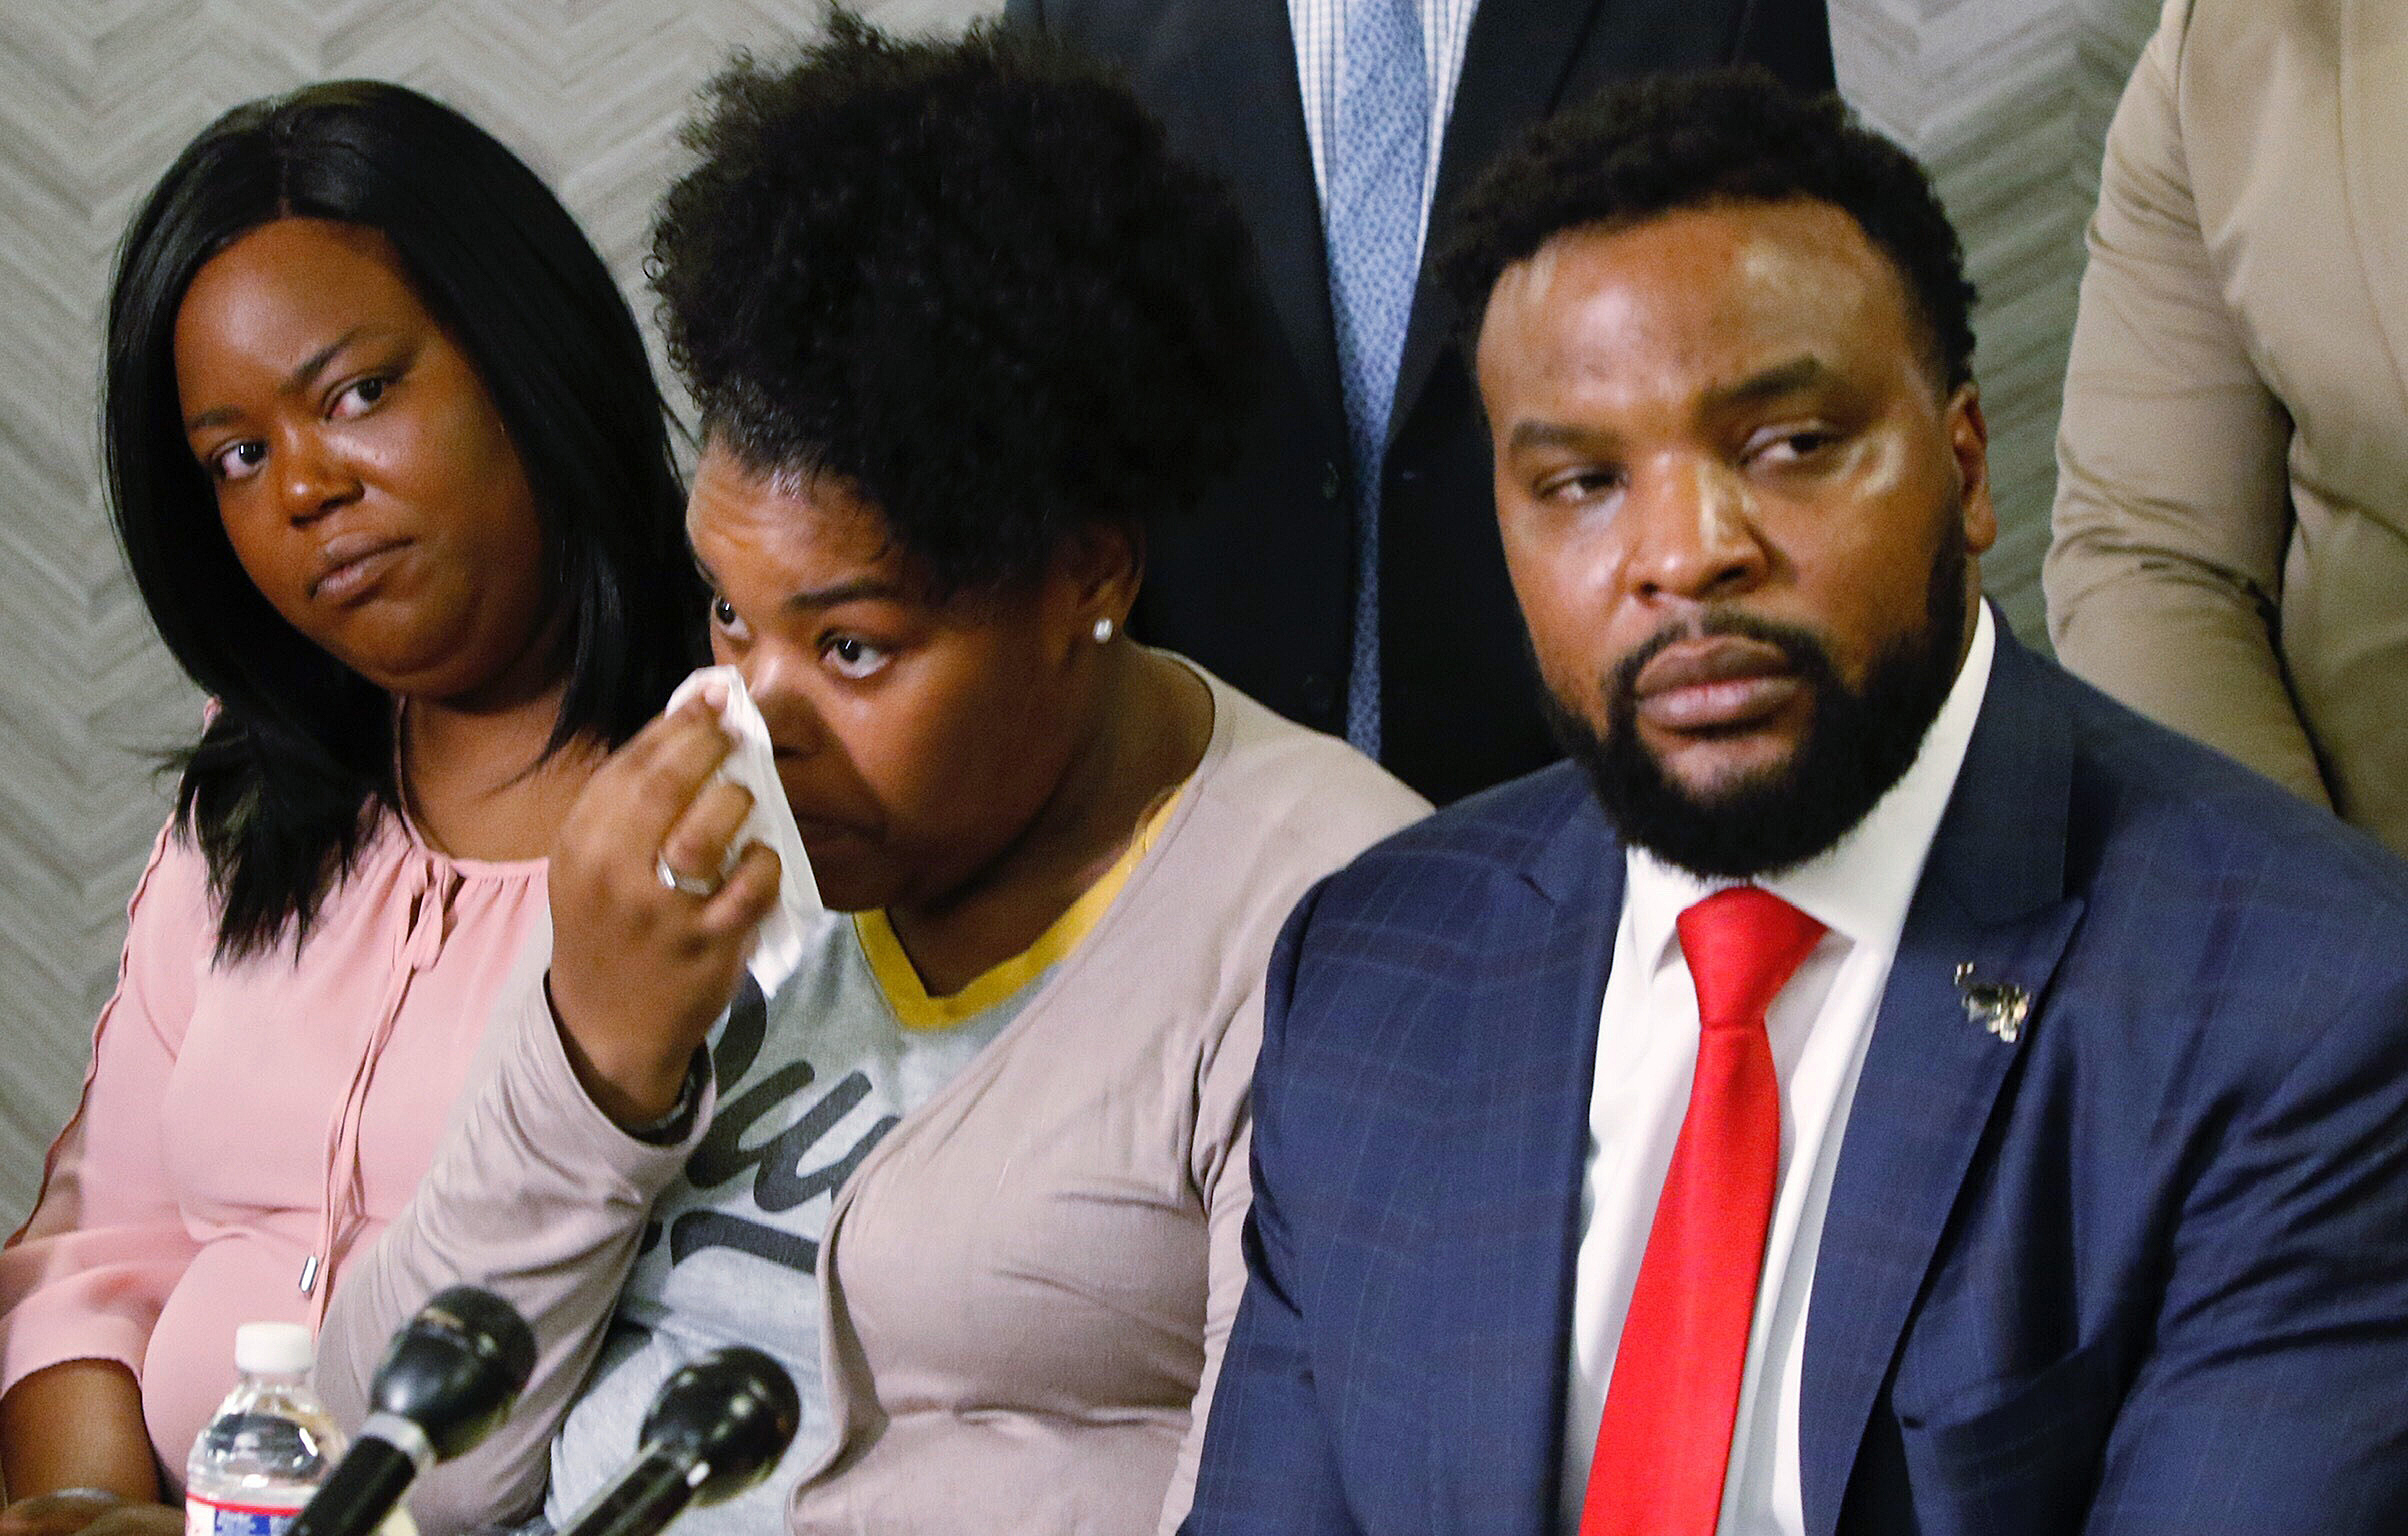 Amber Carr, center, wipes a tear as her sister, Ashley Carr, left, and attorney Lee Merritt, right, listen to Amber and Ashley's brother Adarius Carr talk about their sister Atatiana Jefferson during a news conference, Monday, Oct. 14, 2019, in downtown Dallas.